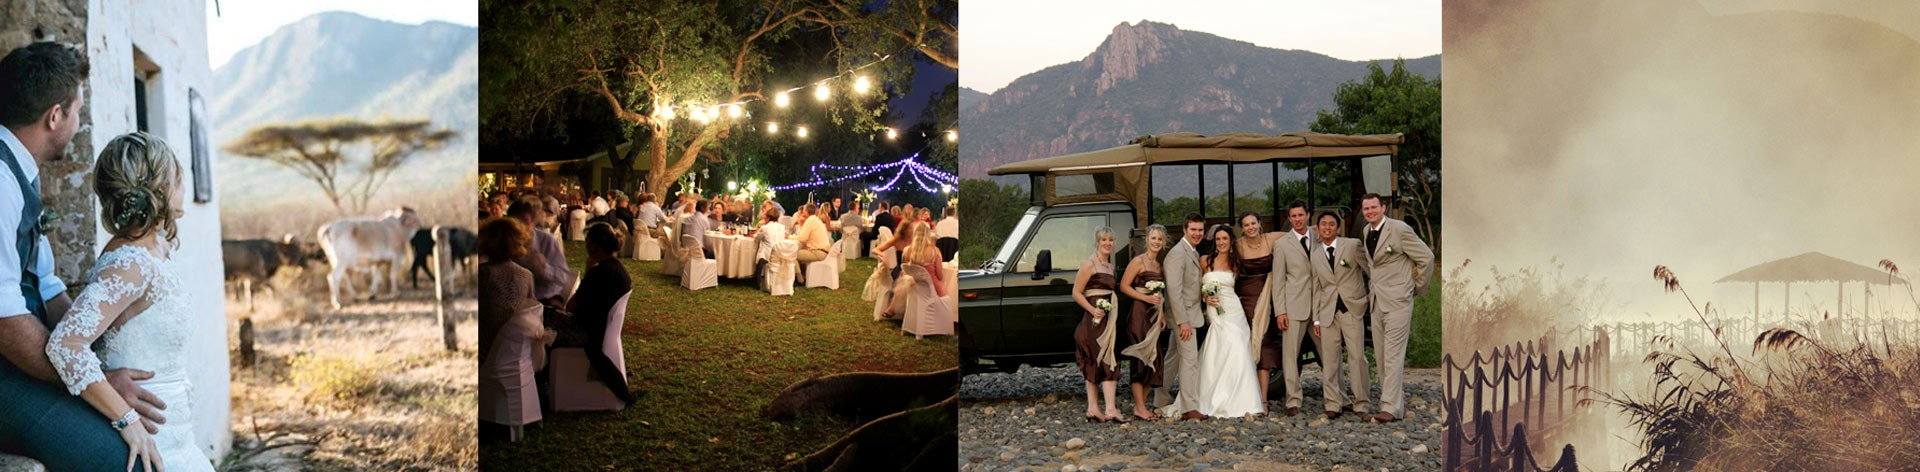 Weddings in Zululand at Ghost Mountain Inn